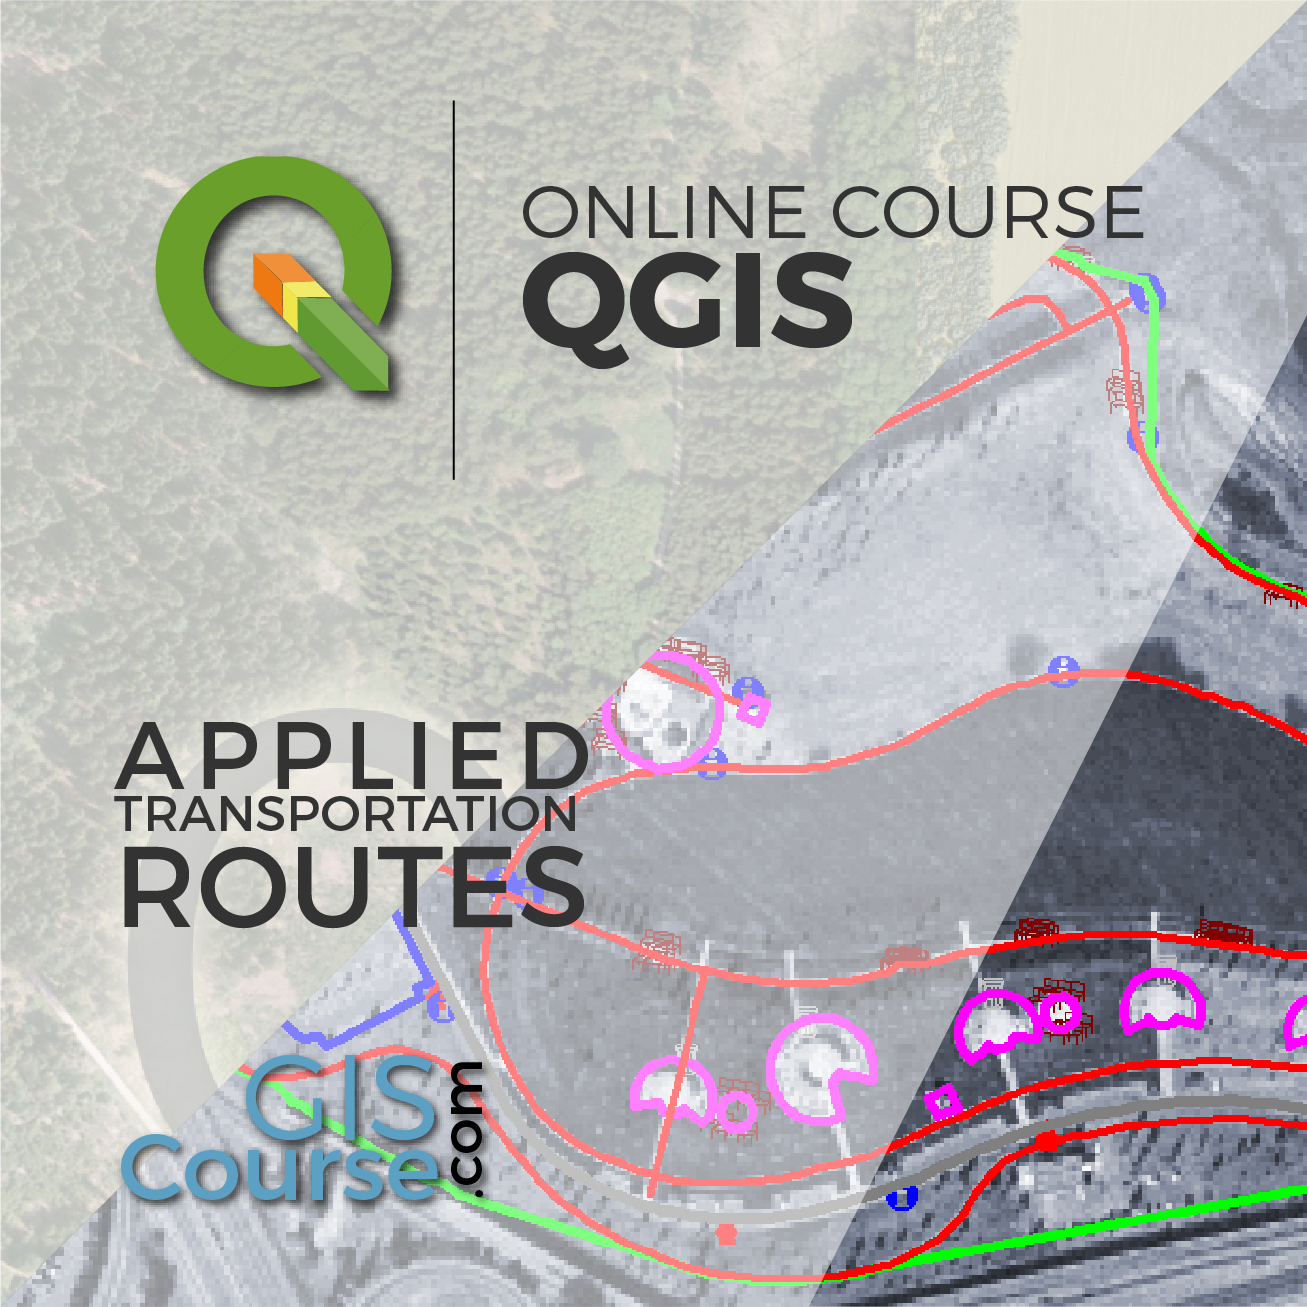 QGIS Course – Route Analysis, finding the shortest path